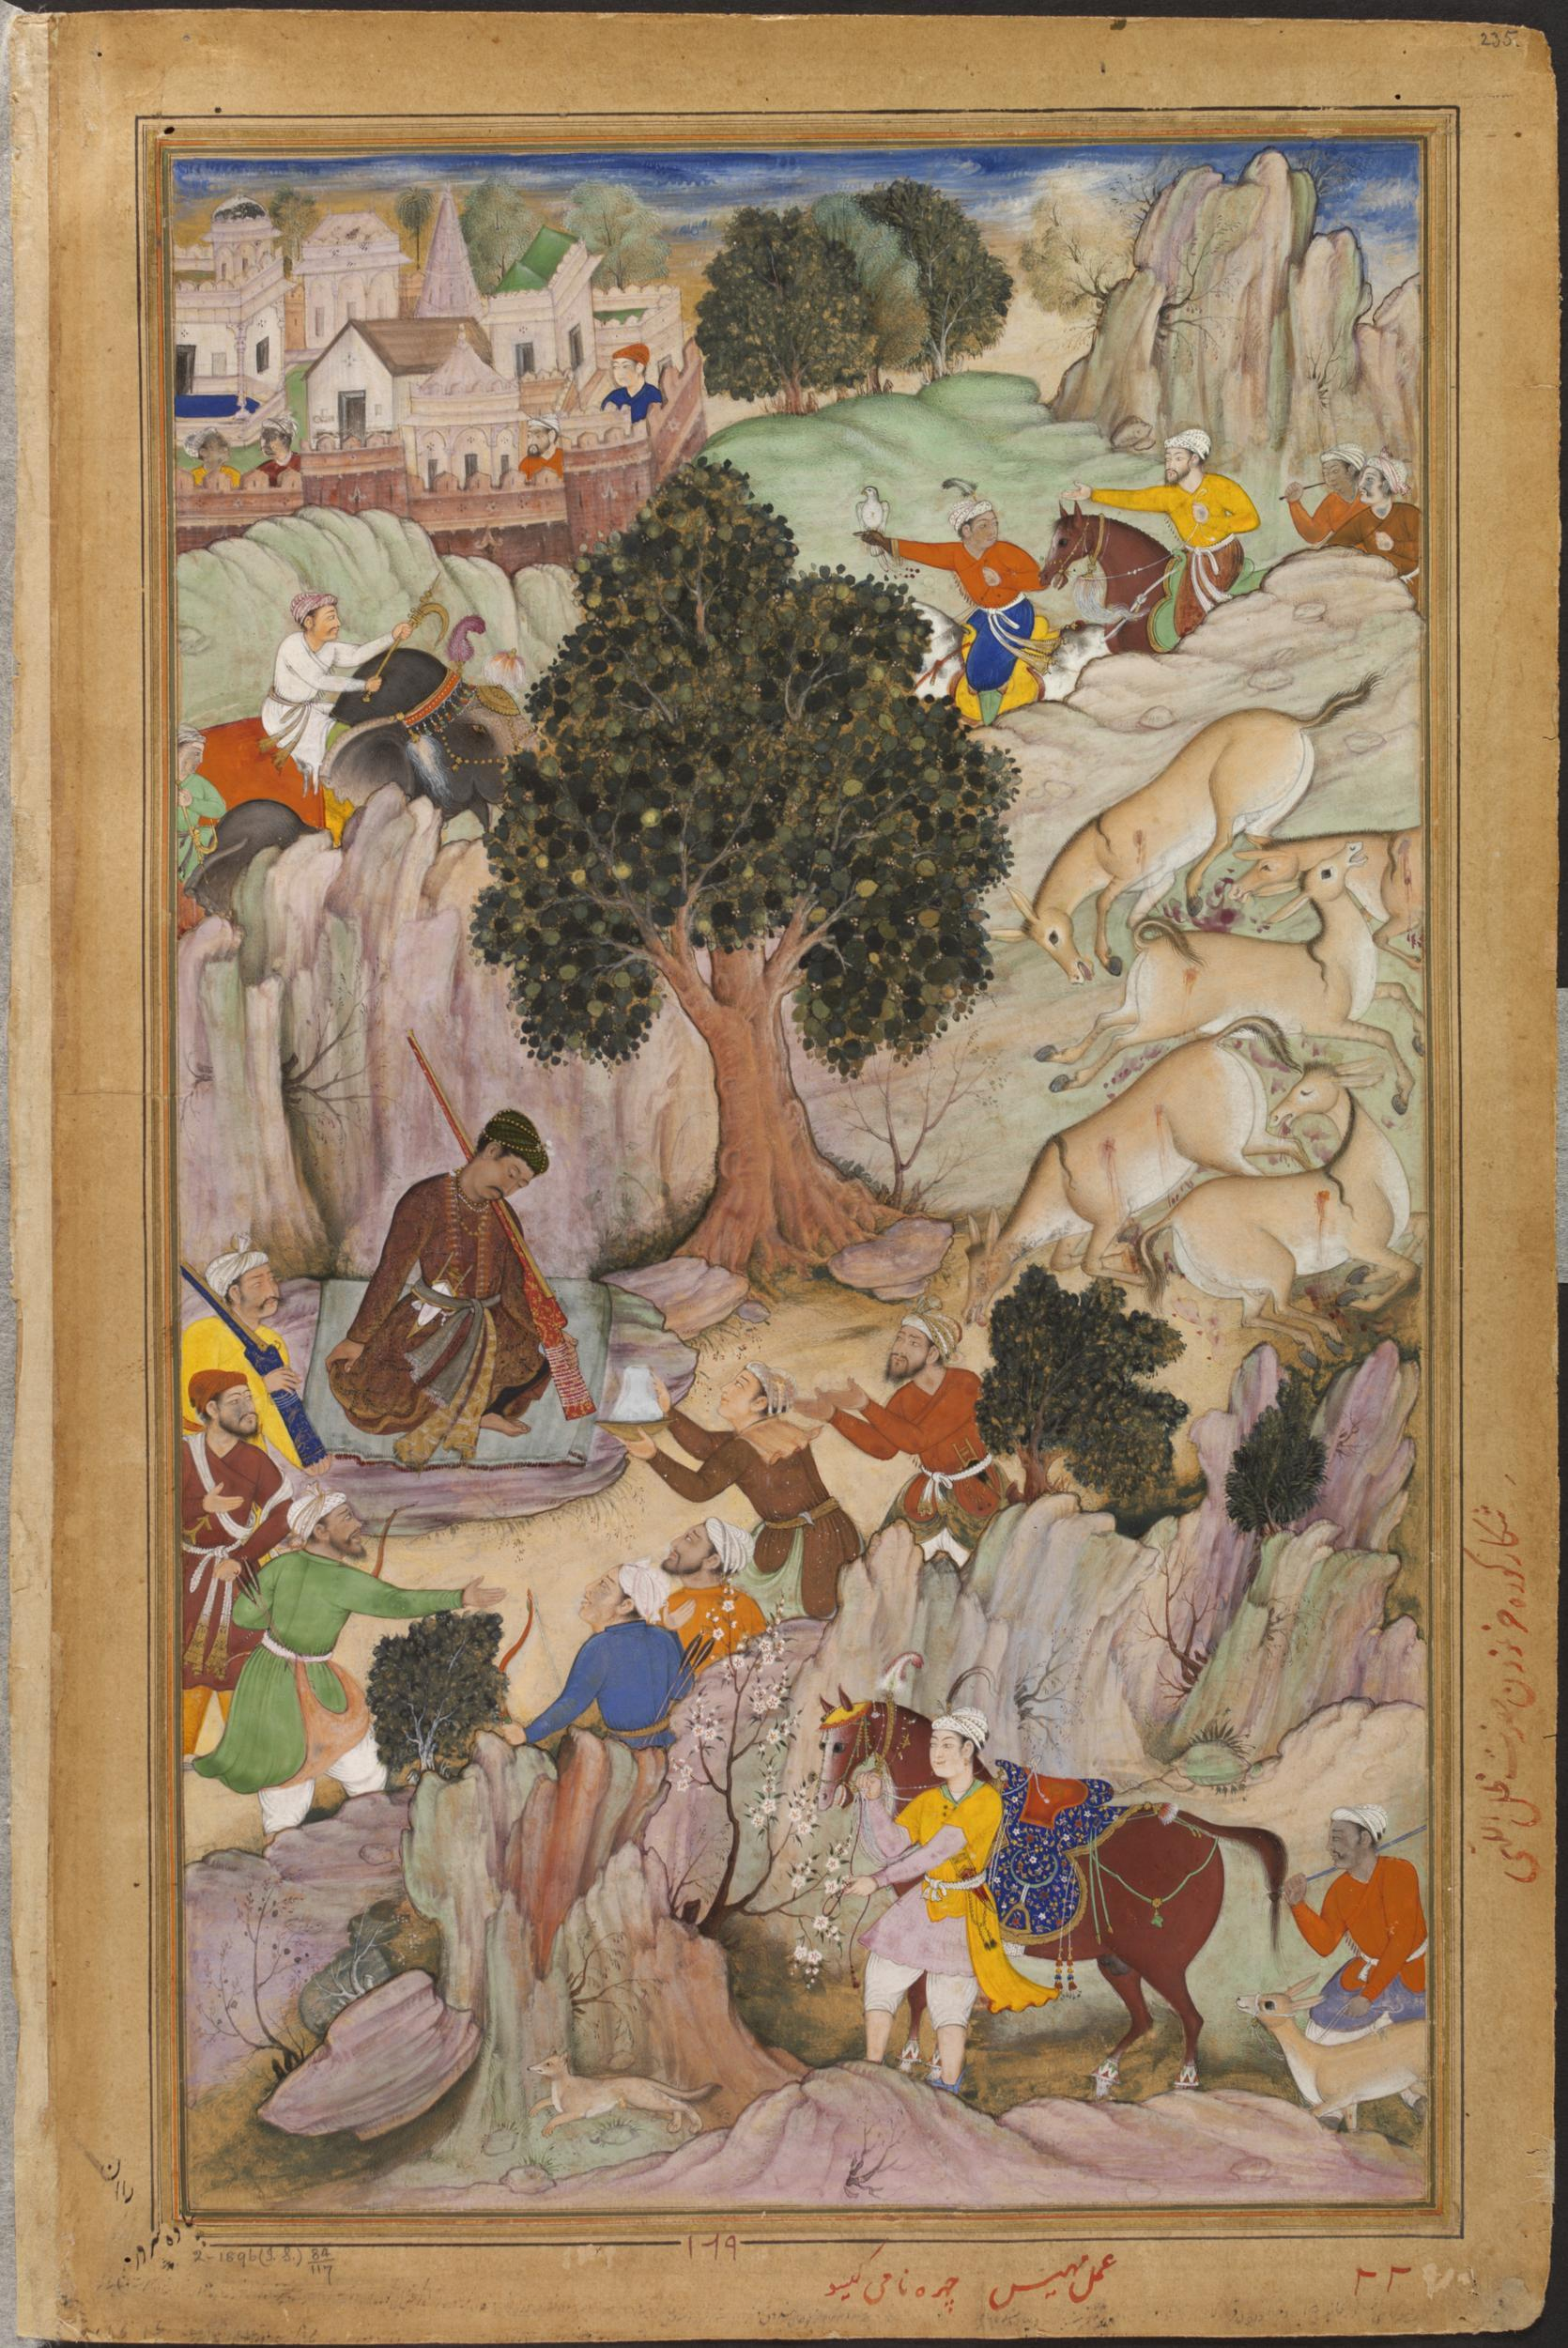 A painting of Akbar on a wild-ass hunt. © Victoria and Albert Museum, London